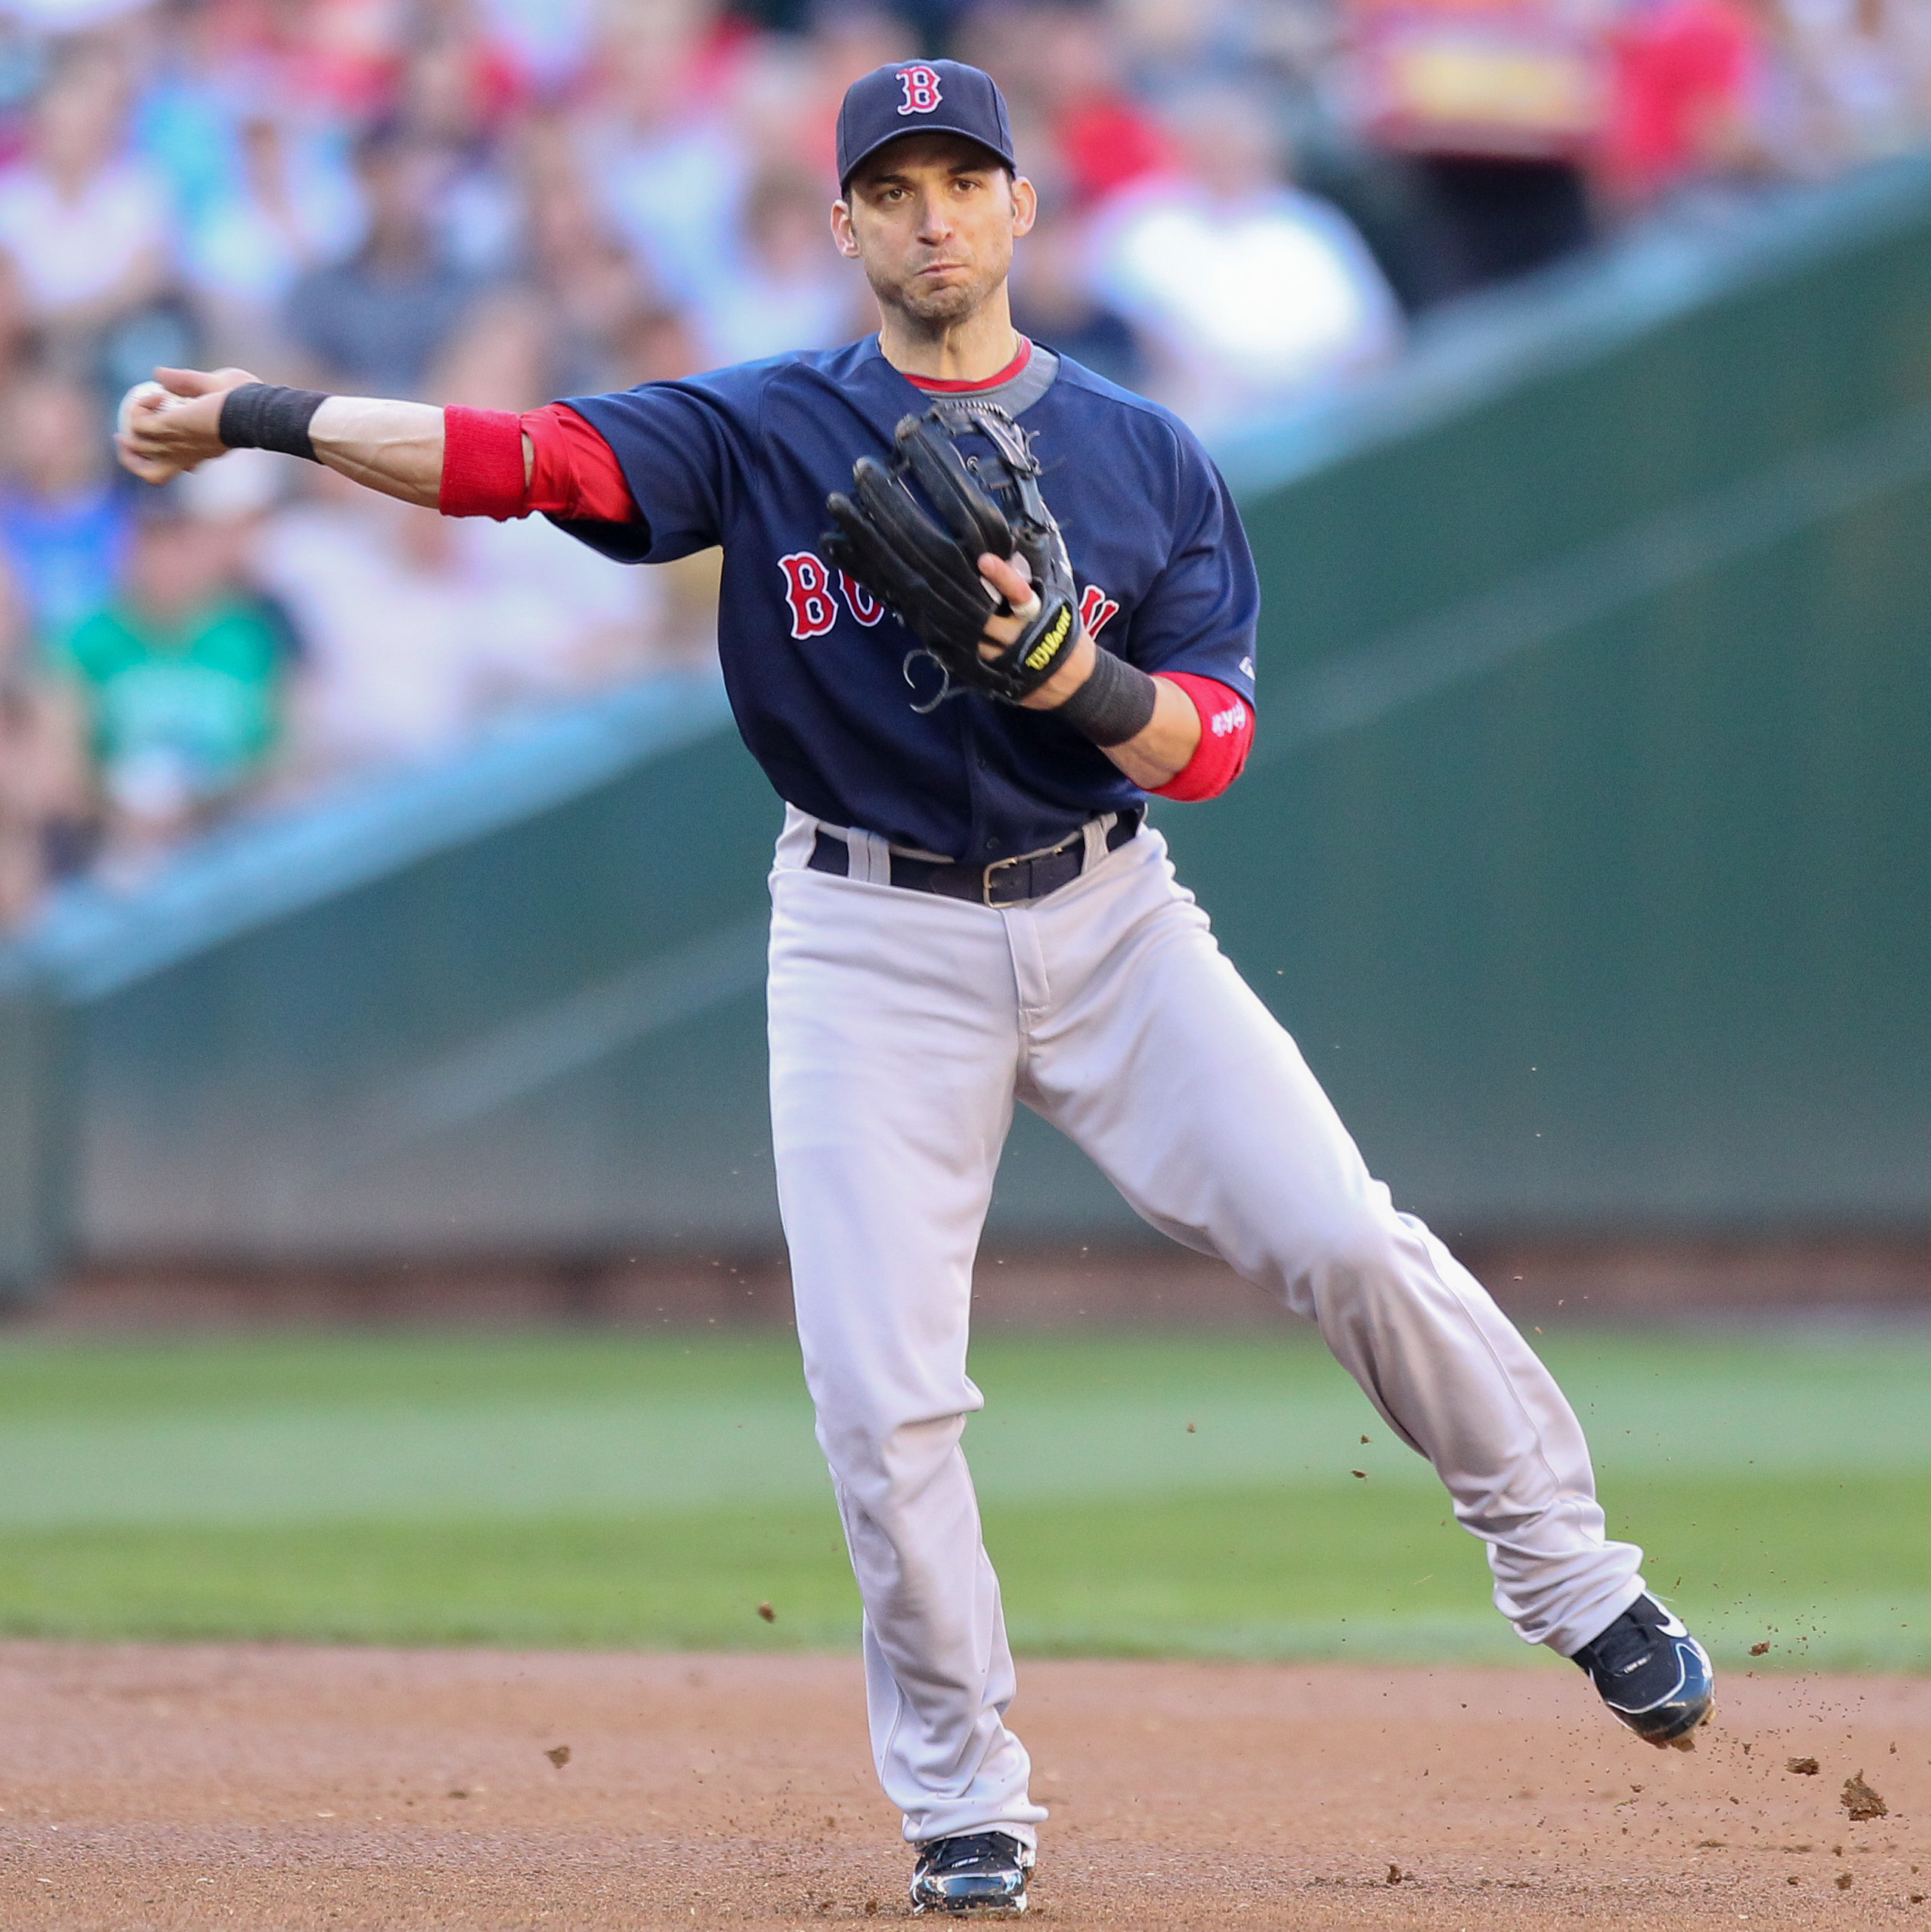 SEATTLE - JULY 24:  Shortstop Marco Scutaro #16 of the Boston Red Sox throws to first against the Seattle Mariners at Safeco Field on July 24, 2010 in Seattle, Washington. (Photo by Otto Greule Jr/Getty Images)